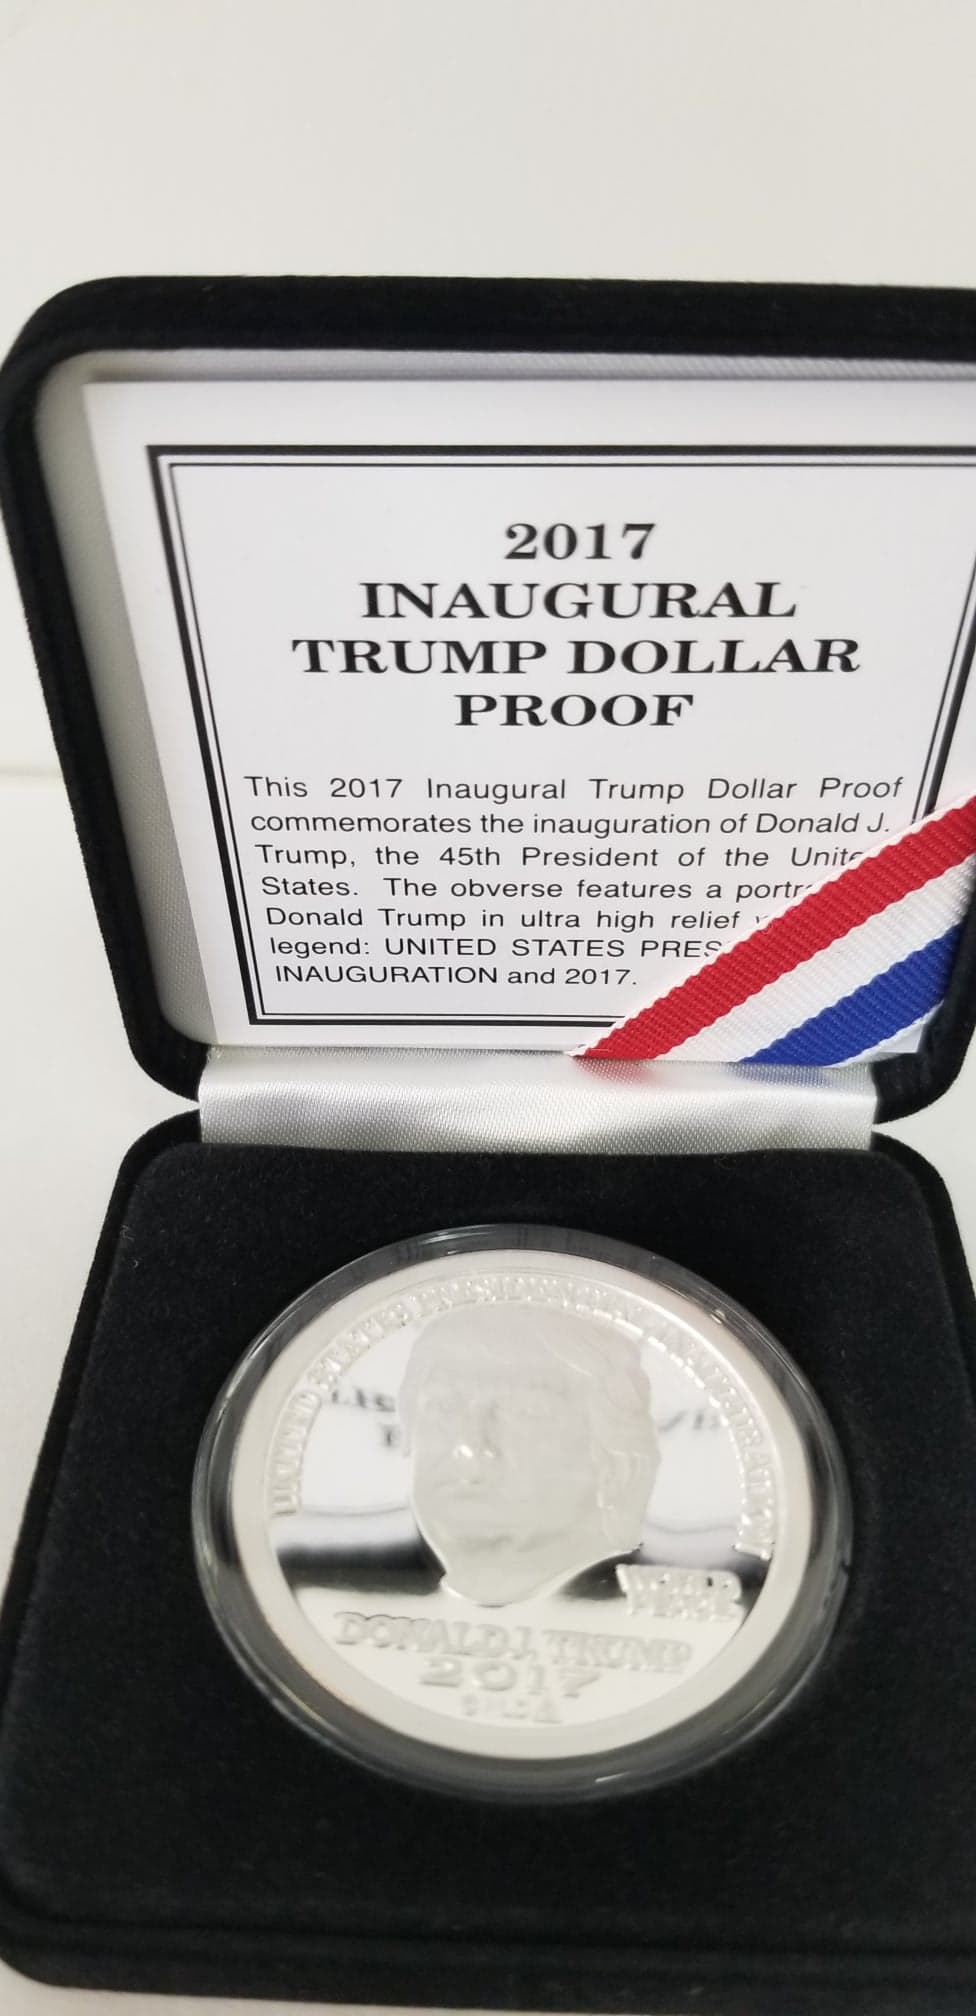 2017 PROOF Silver Trump Inaugural Dollar